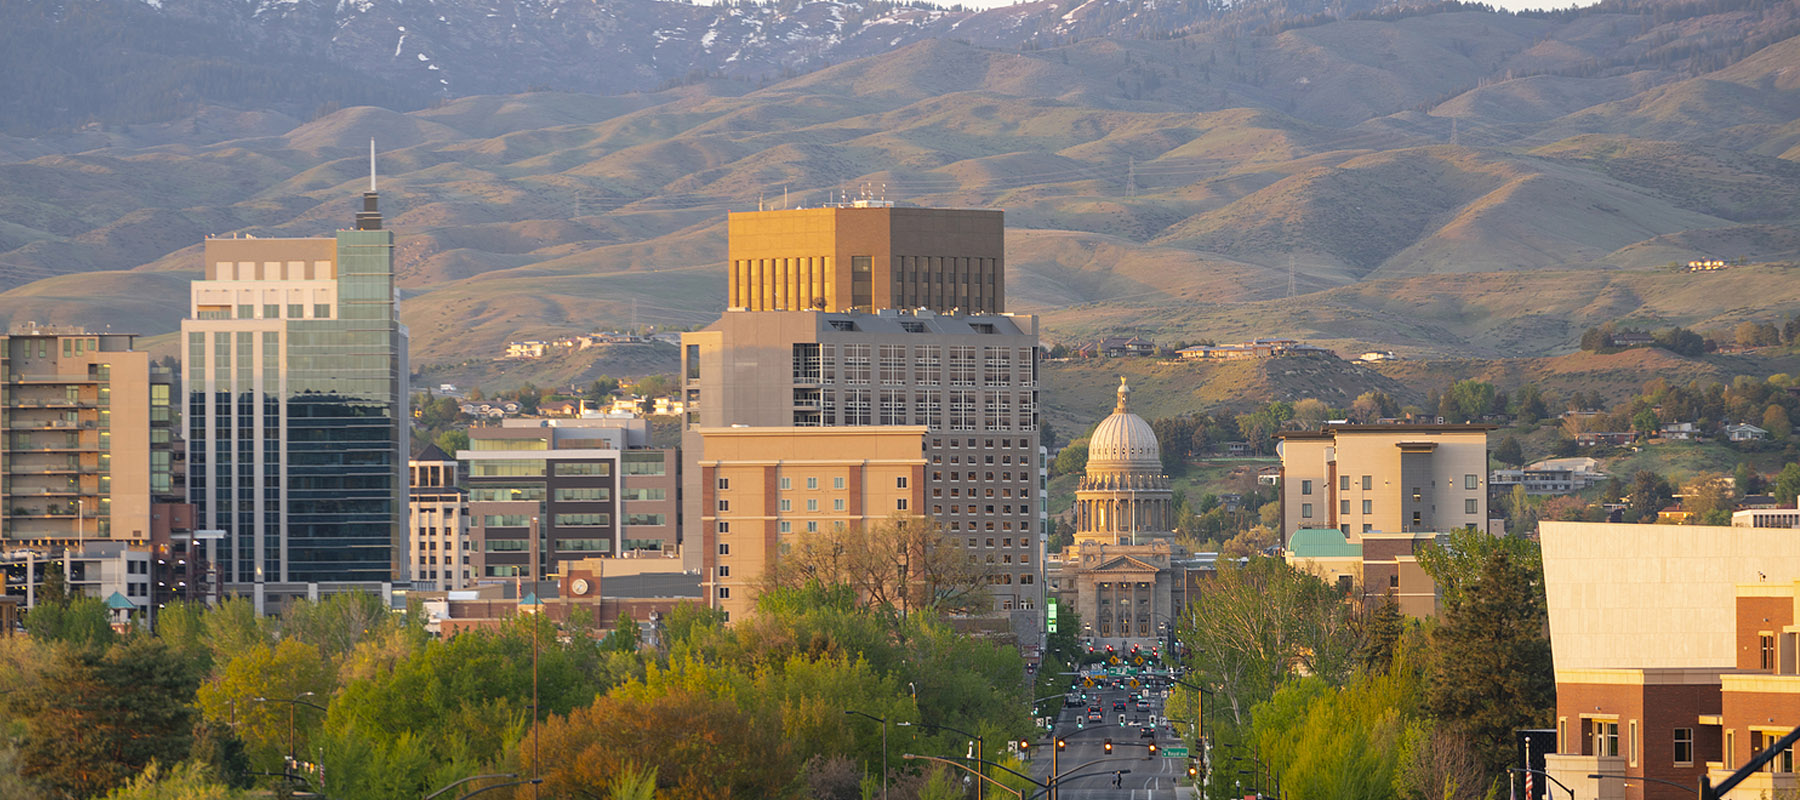 Cityscape view of downtown Boise Idaho